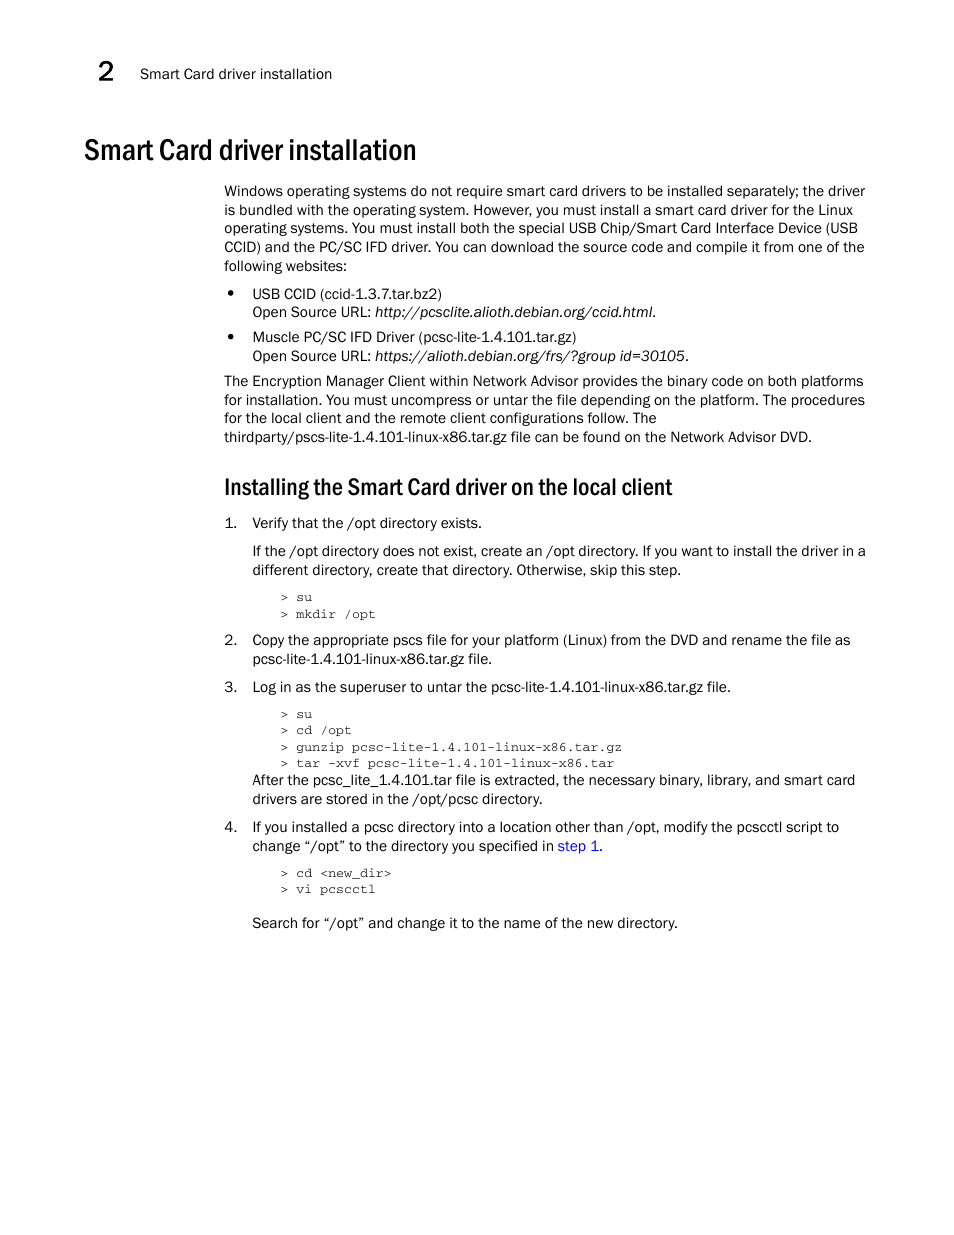 Smart card driver installation | Brocade Network Advisor